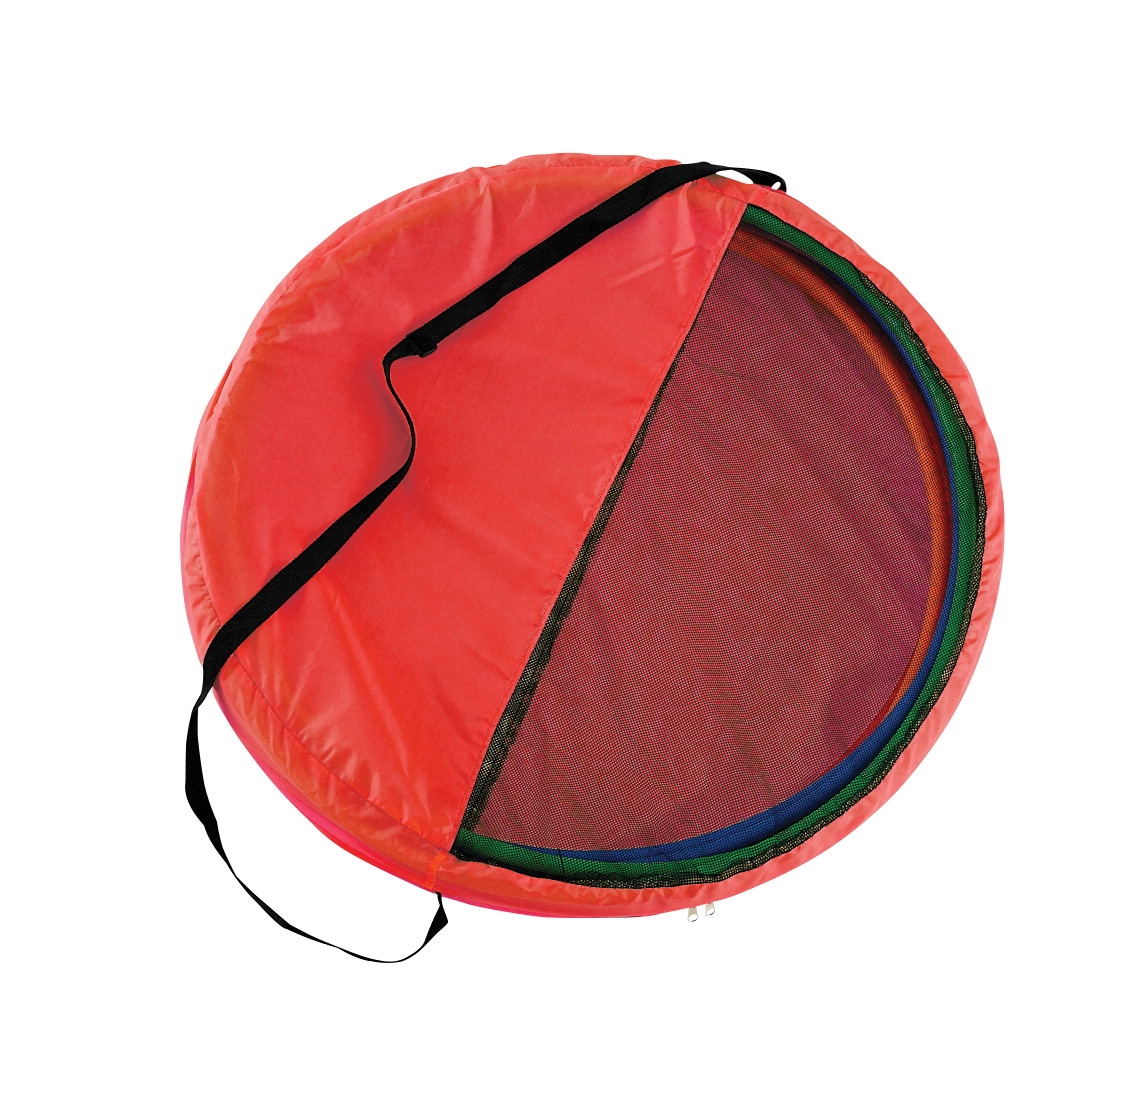 Bowling Outdoor Activities Bowling - 1478839 - Sportime 24 In Hula Hoop Tote-n-store Bag; Red 1478839